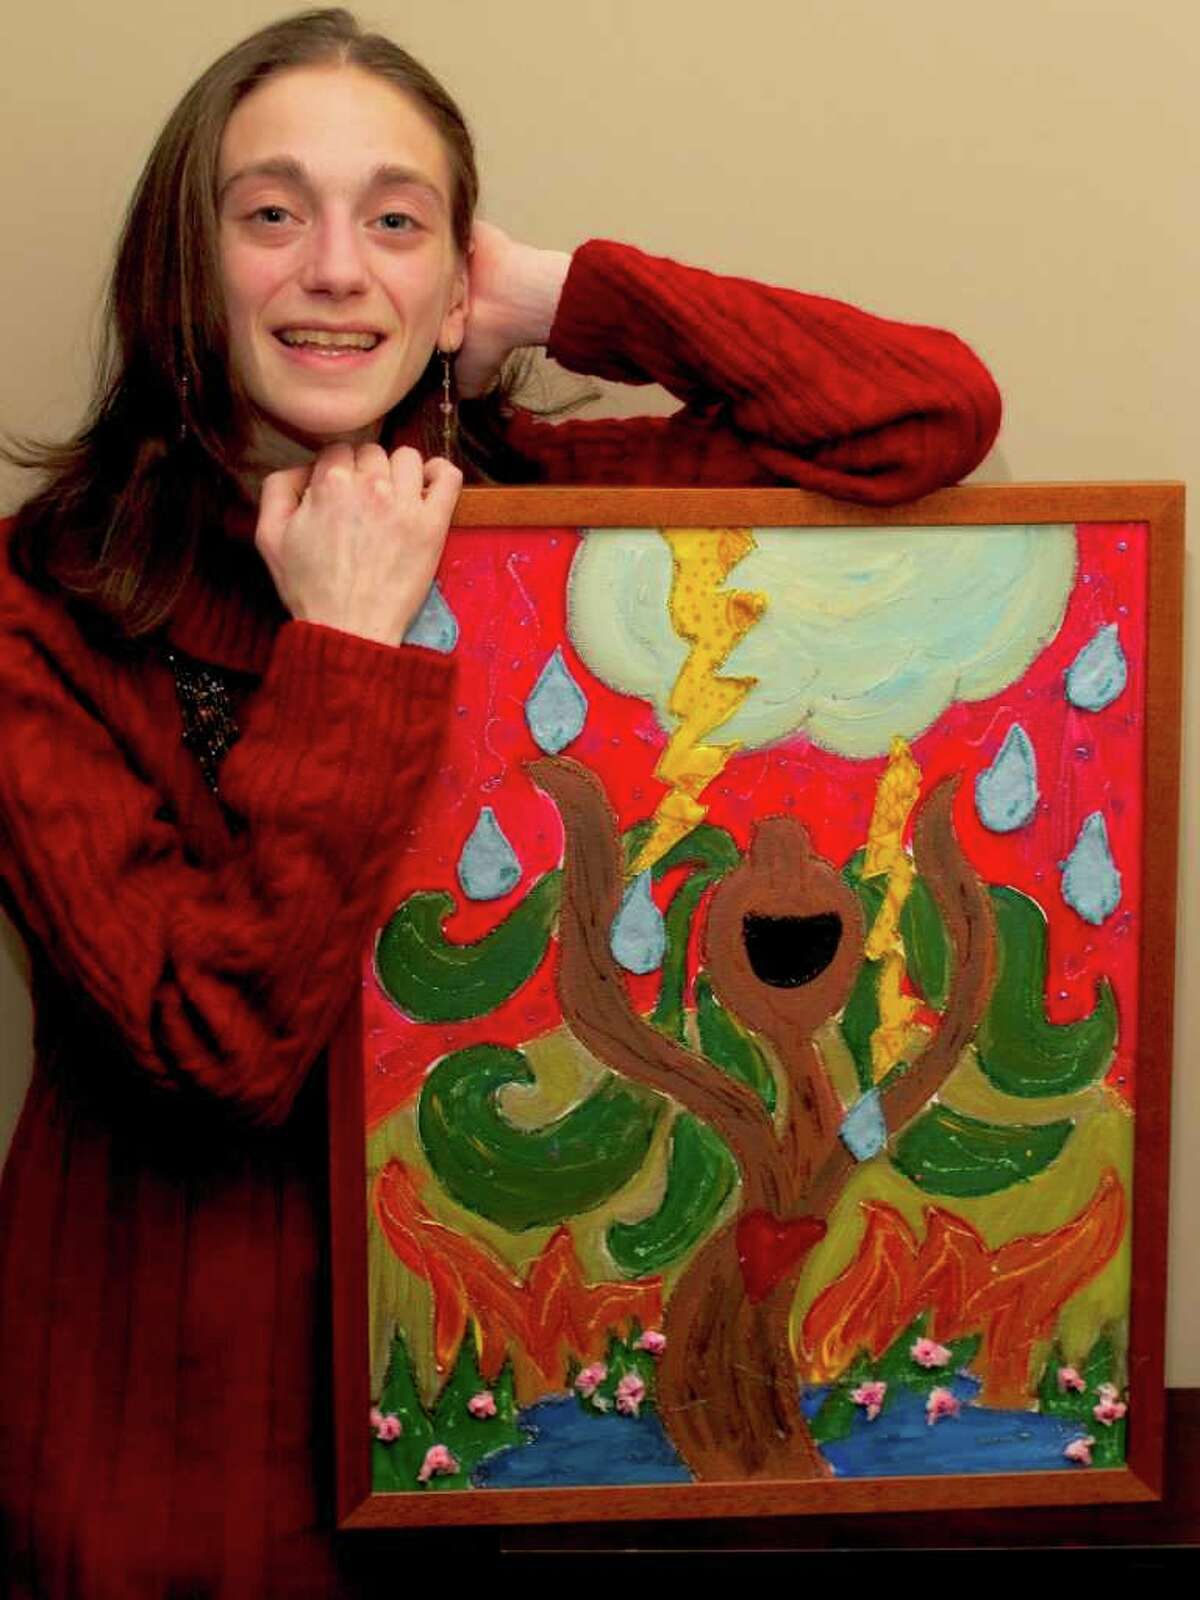 Westport artist Amy Oestreicher with one of her paintings that will be displayed Sunday in a show of her work at the Westport Woman's Club.